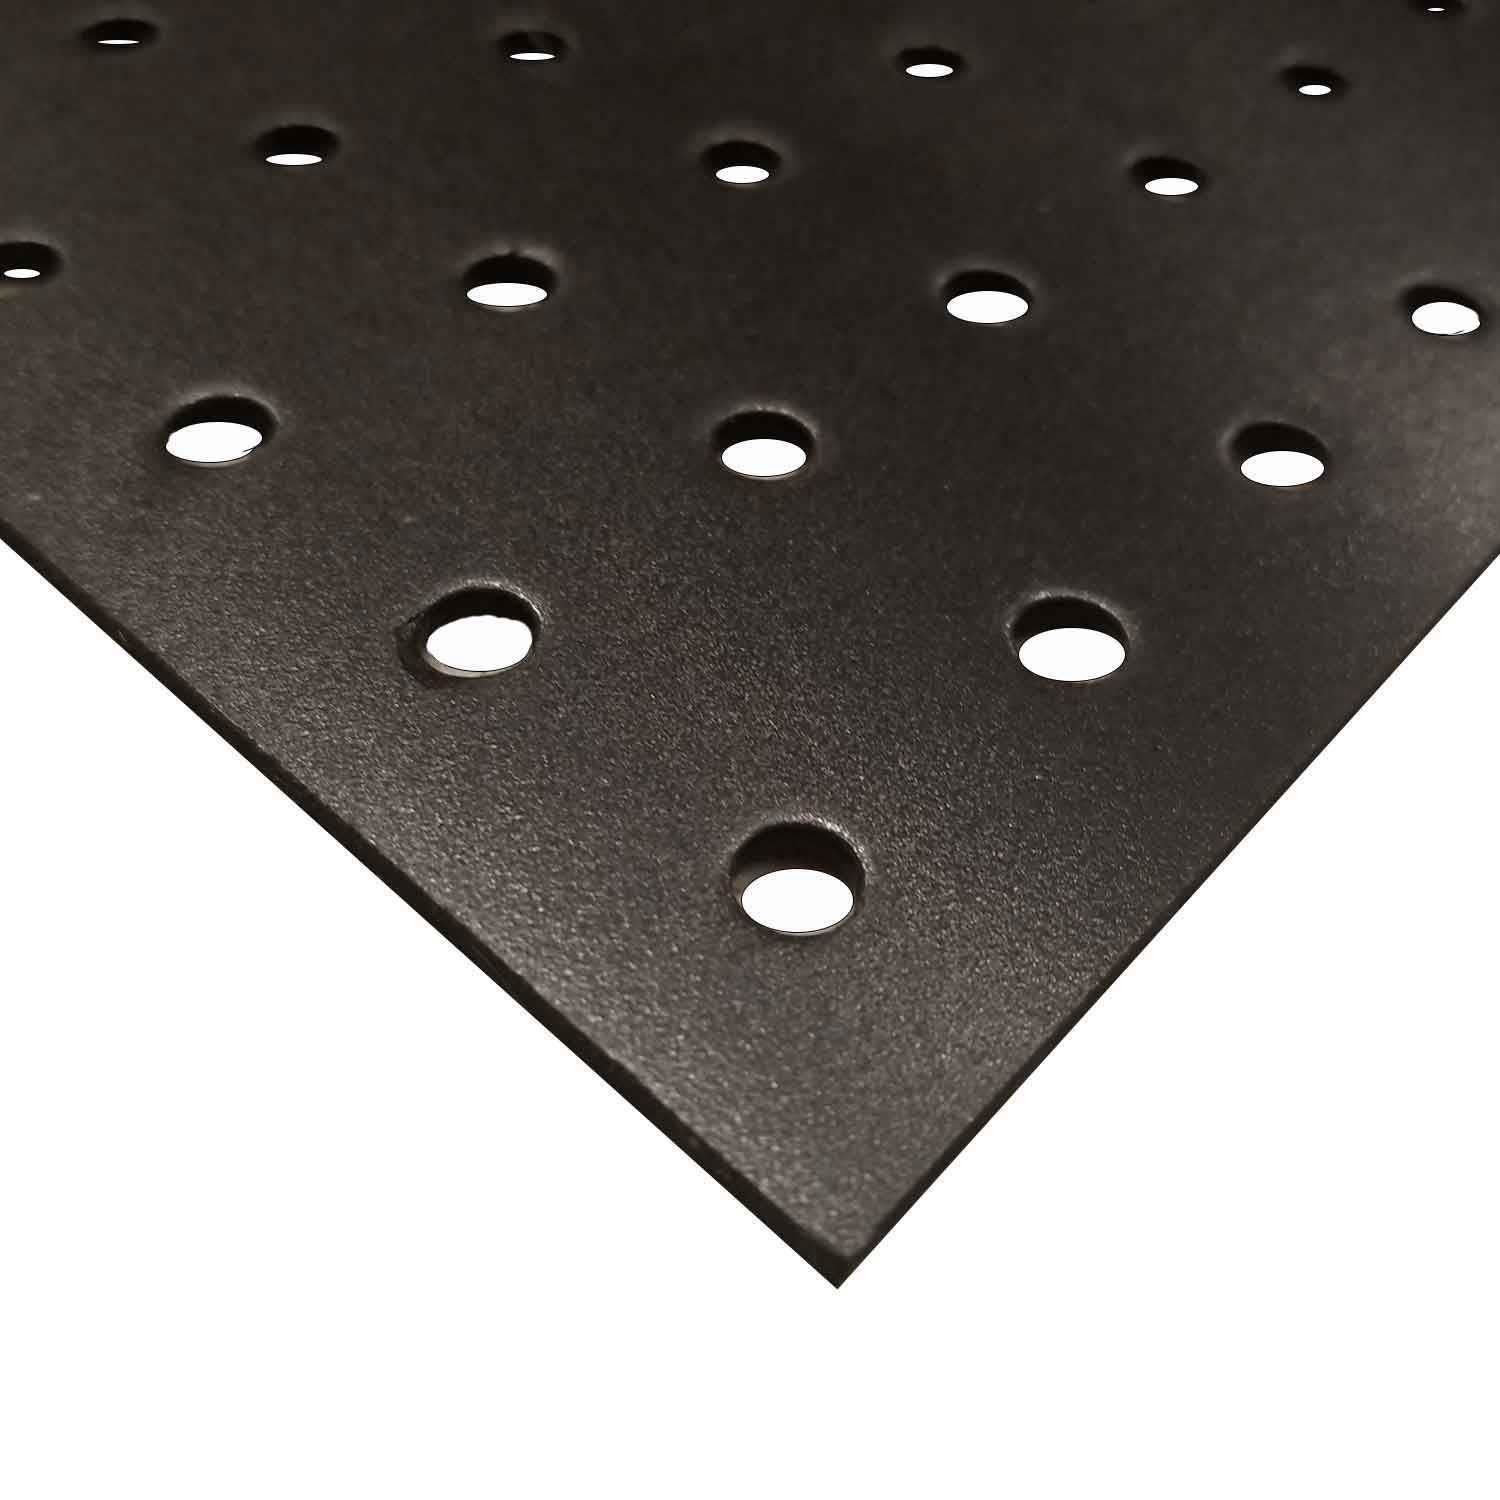 Online Plastic Supply Black Perforated PVC Expanded Sheet 1/8'' (3mm) x 24'' x 48'' (1/4'' Holes) (3 Pack)